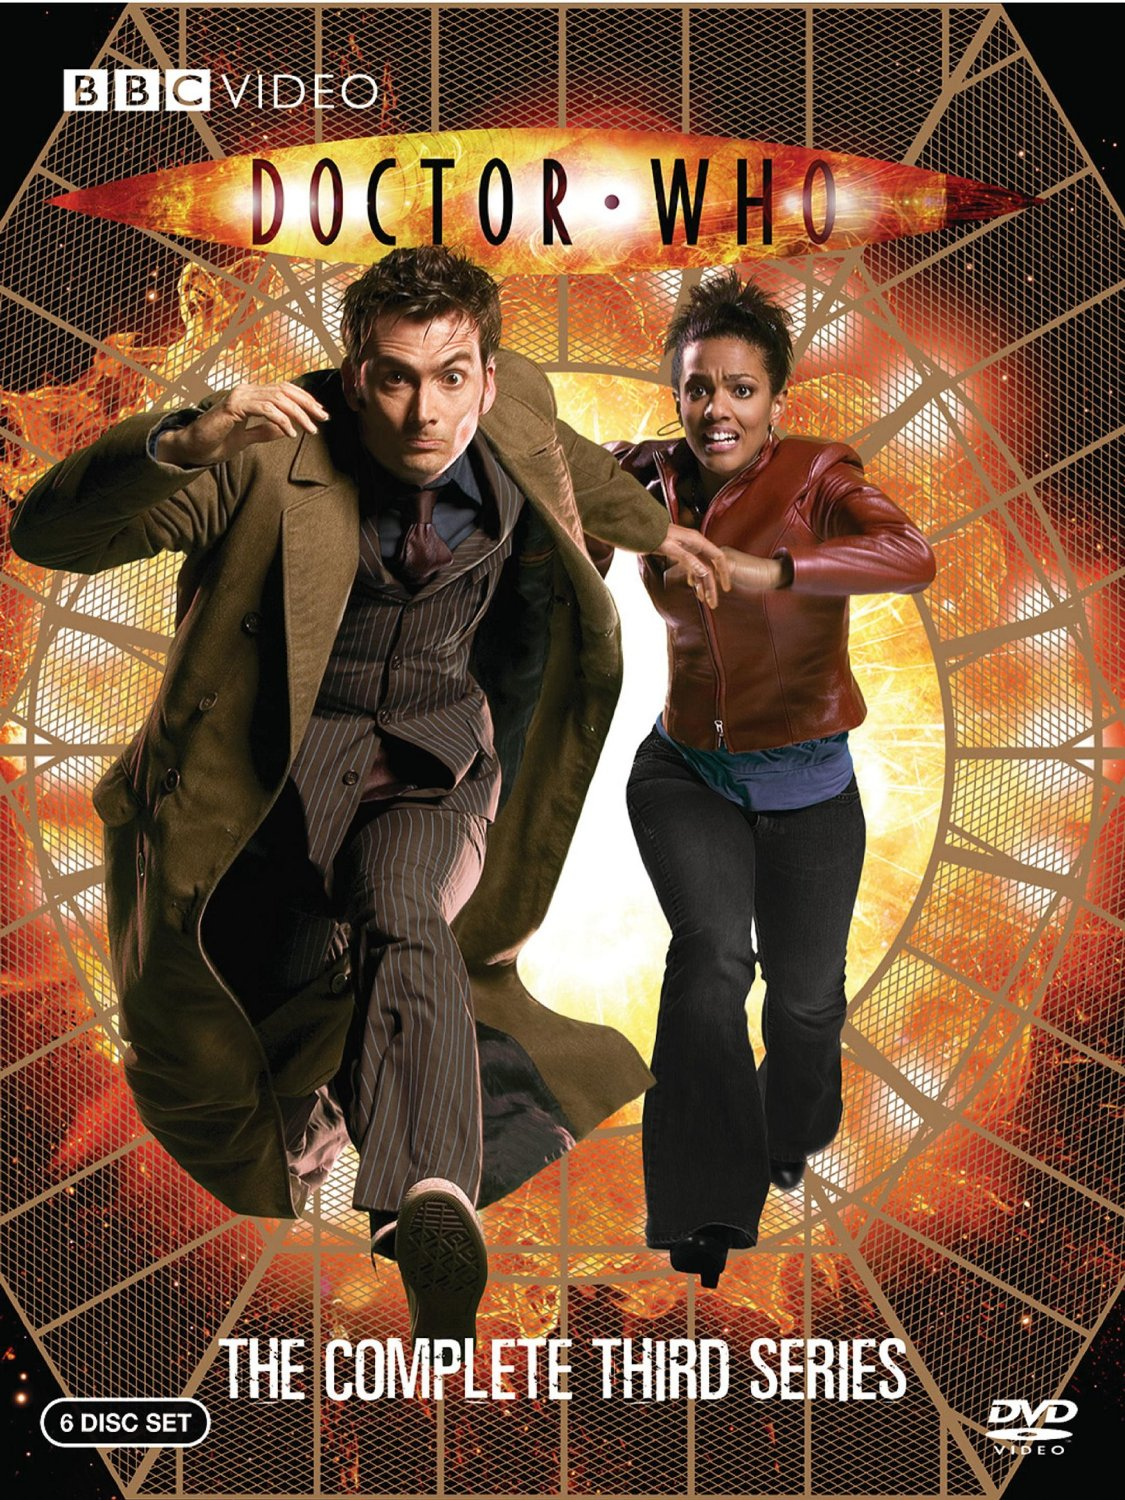 """Doctor Who Series 3"" DVD cover."